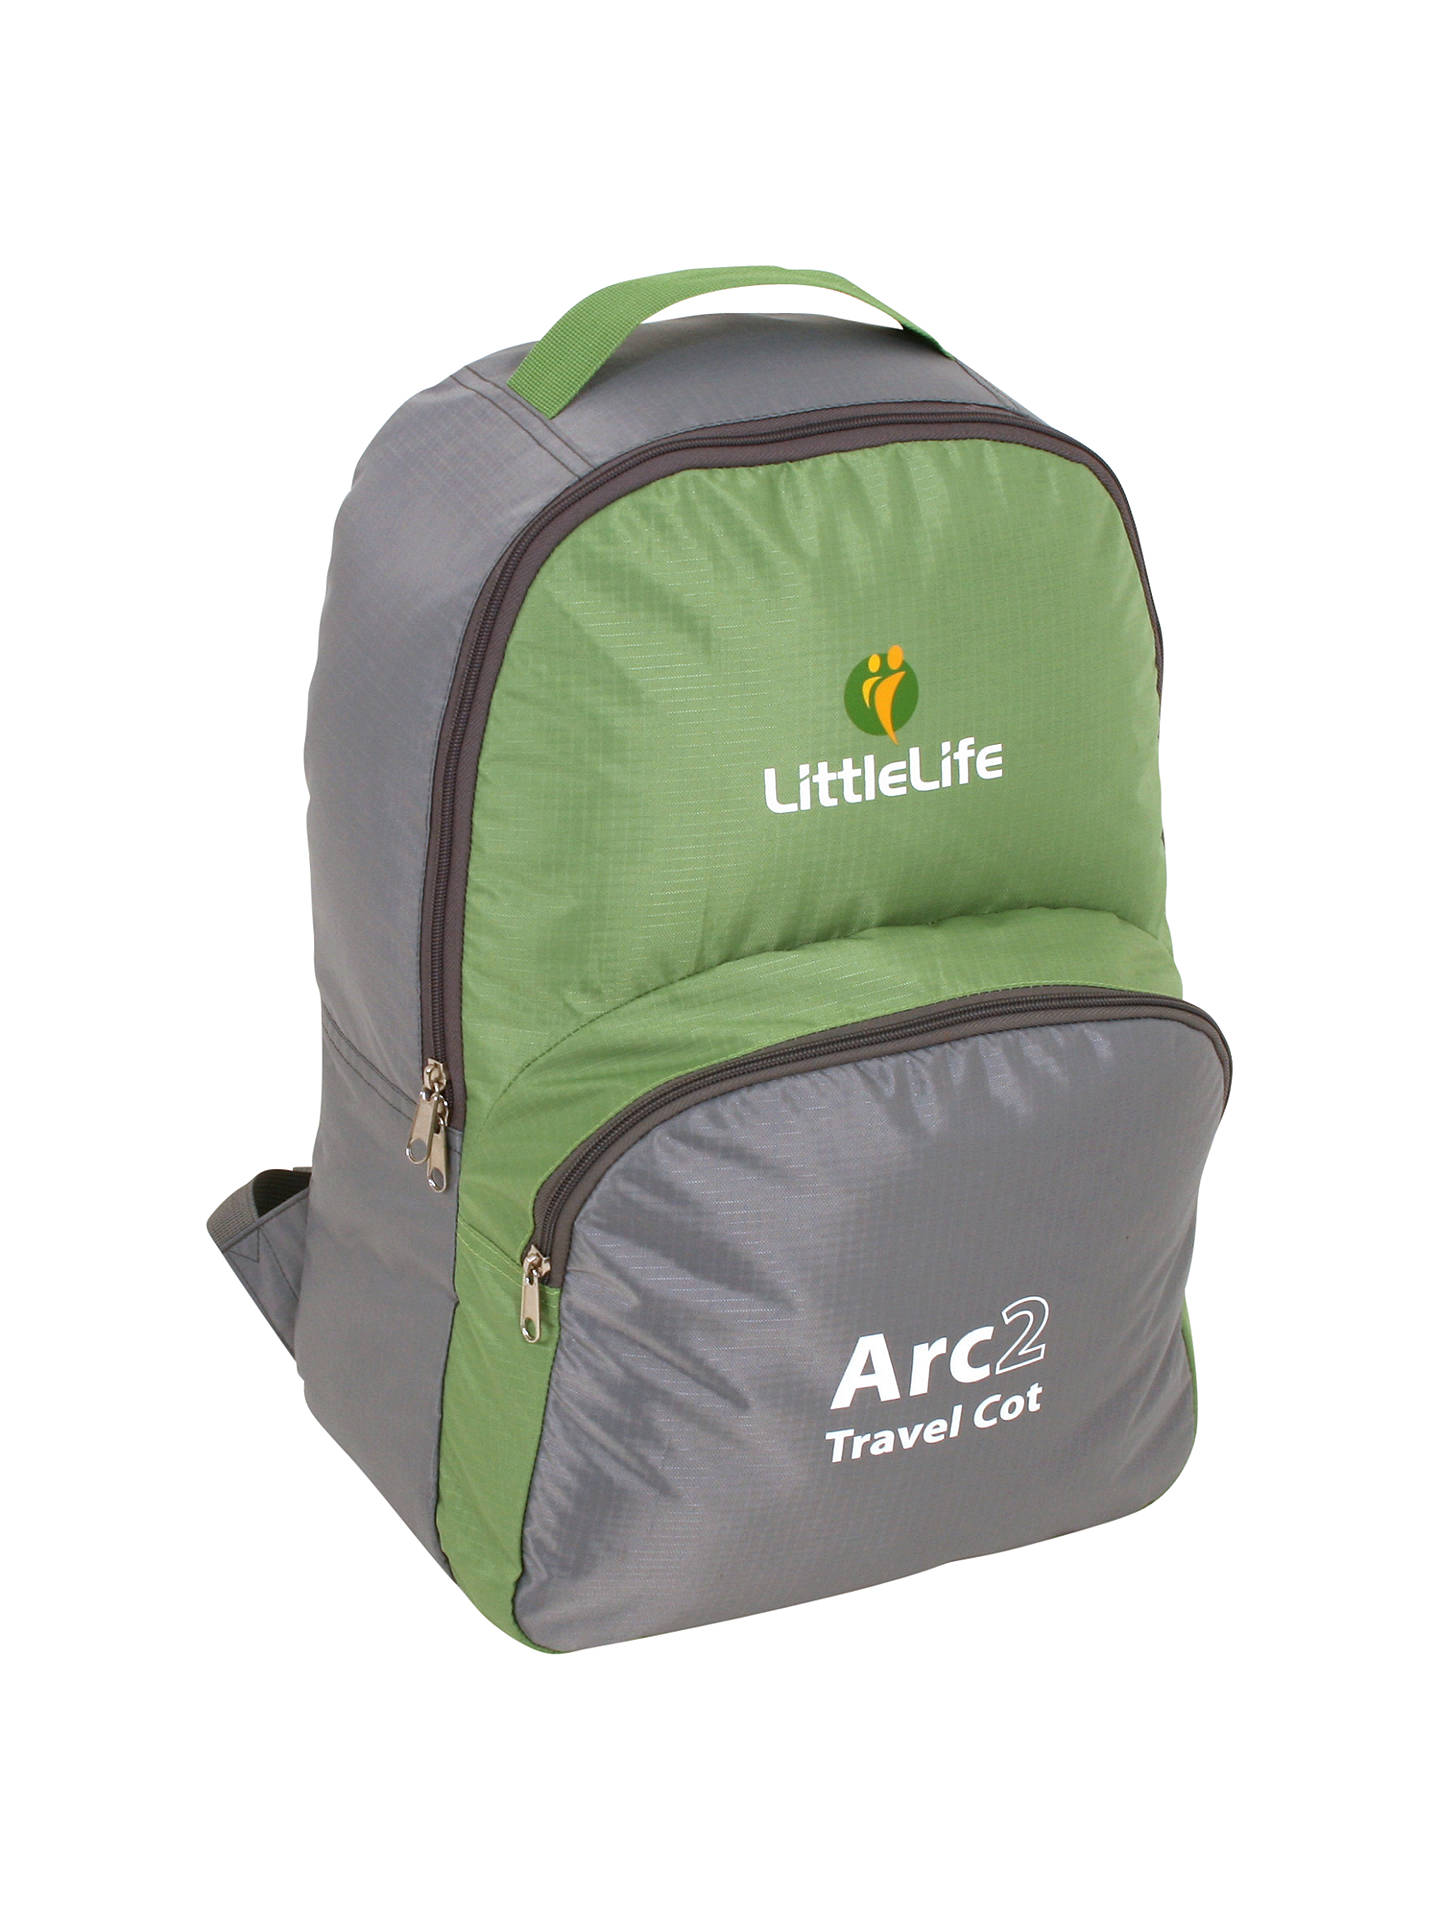 BuyLittleLife Arc 2 Travel Cot, Green Online at johnlewis.com